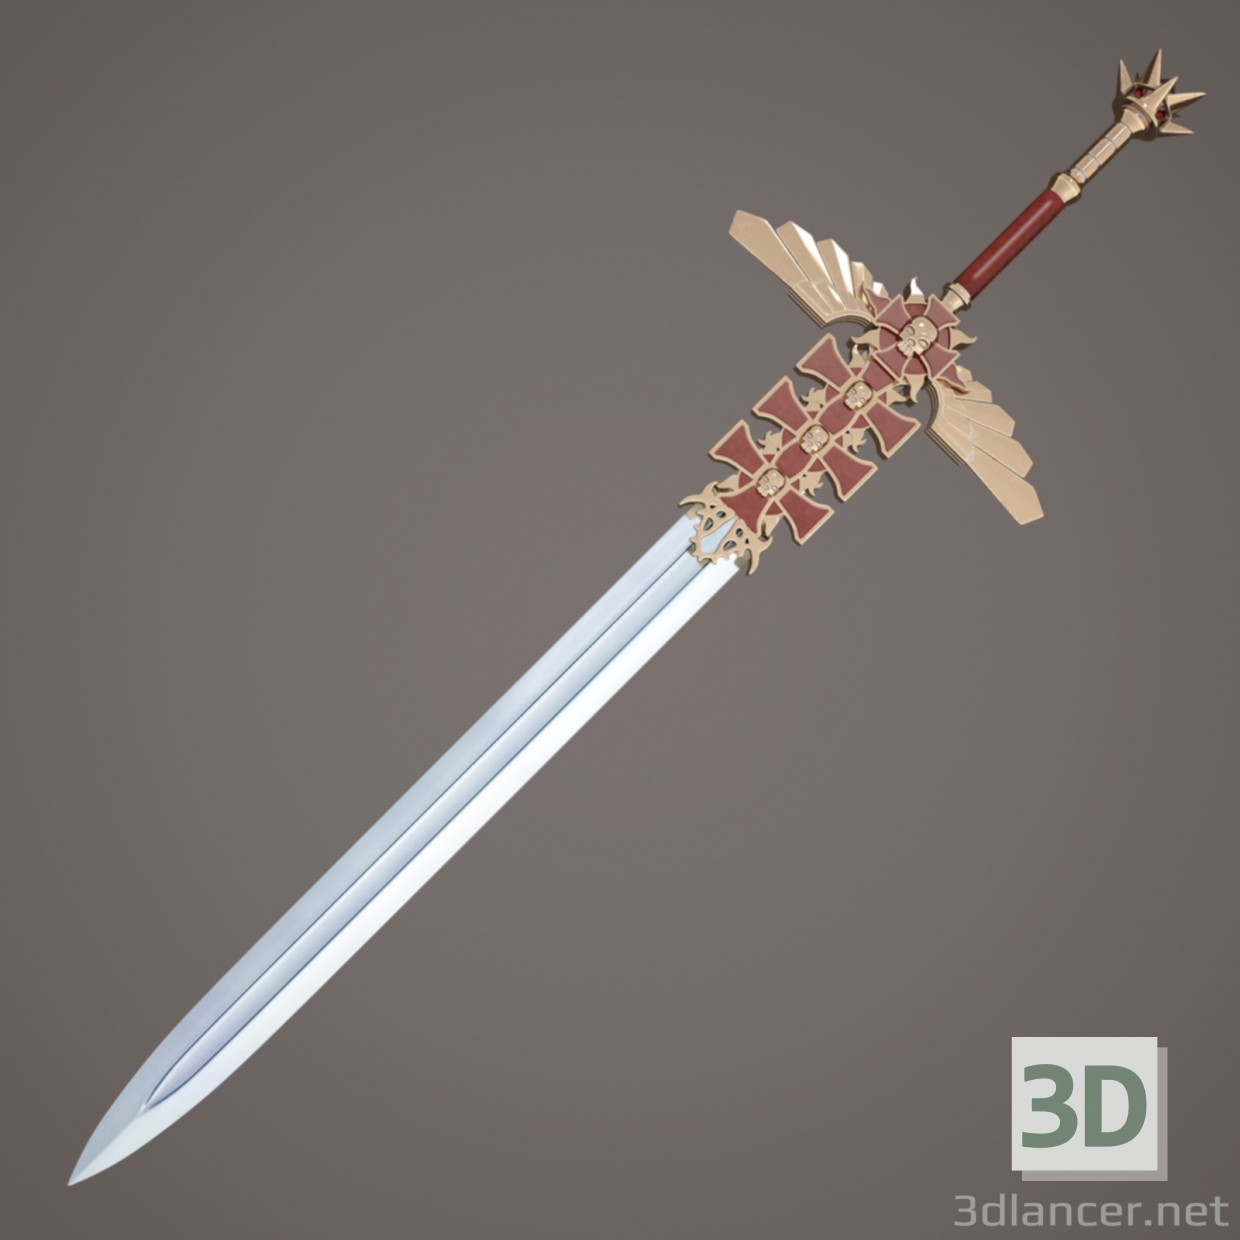 3d Fantasy sword model buy - render